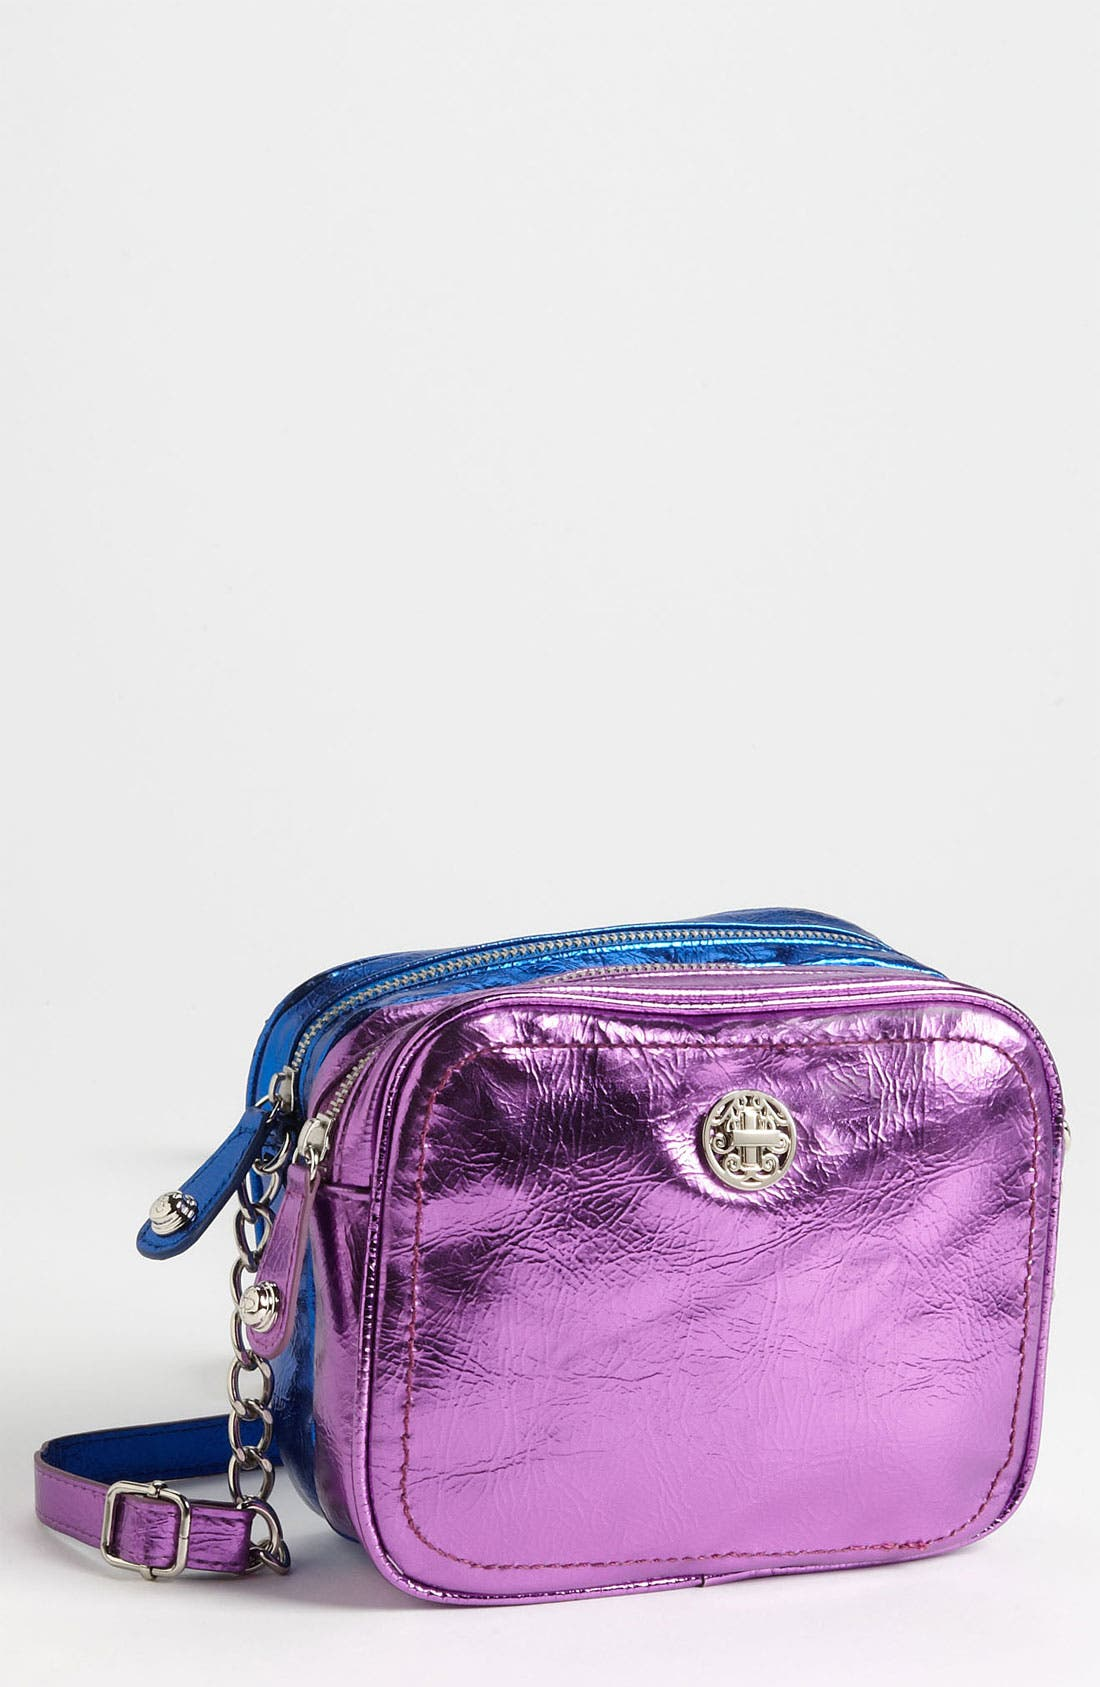 Main Image - Jessica Simpson 'Double Take' Crossbody Bag